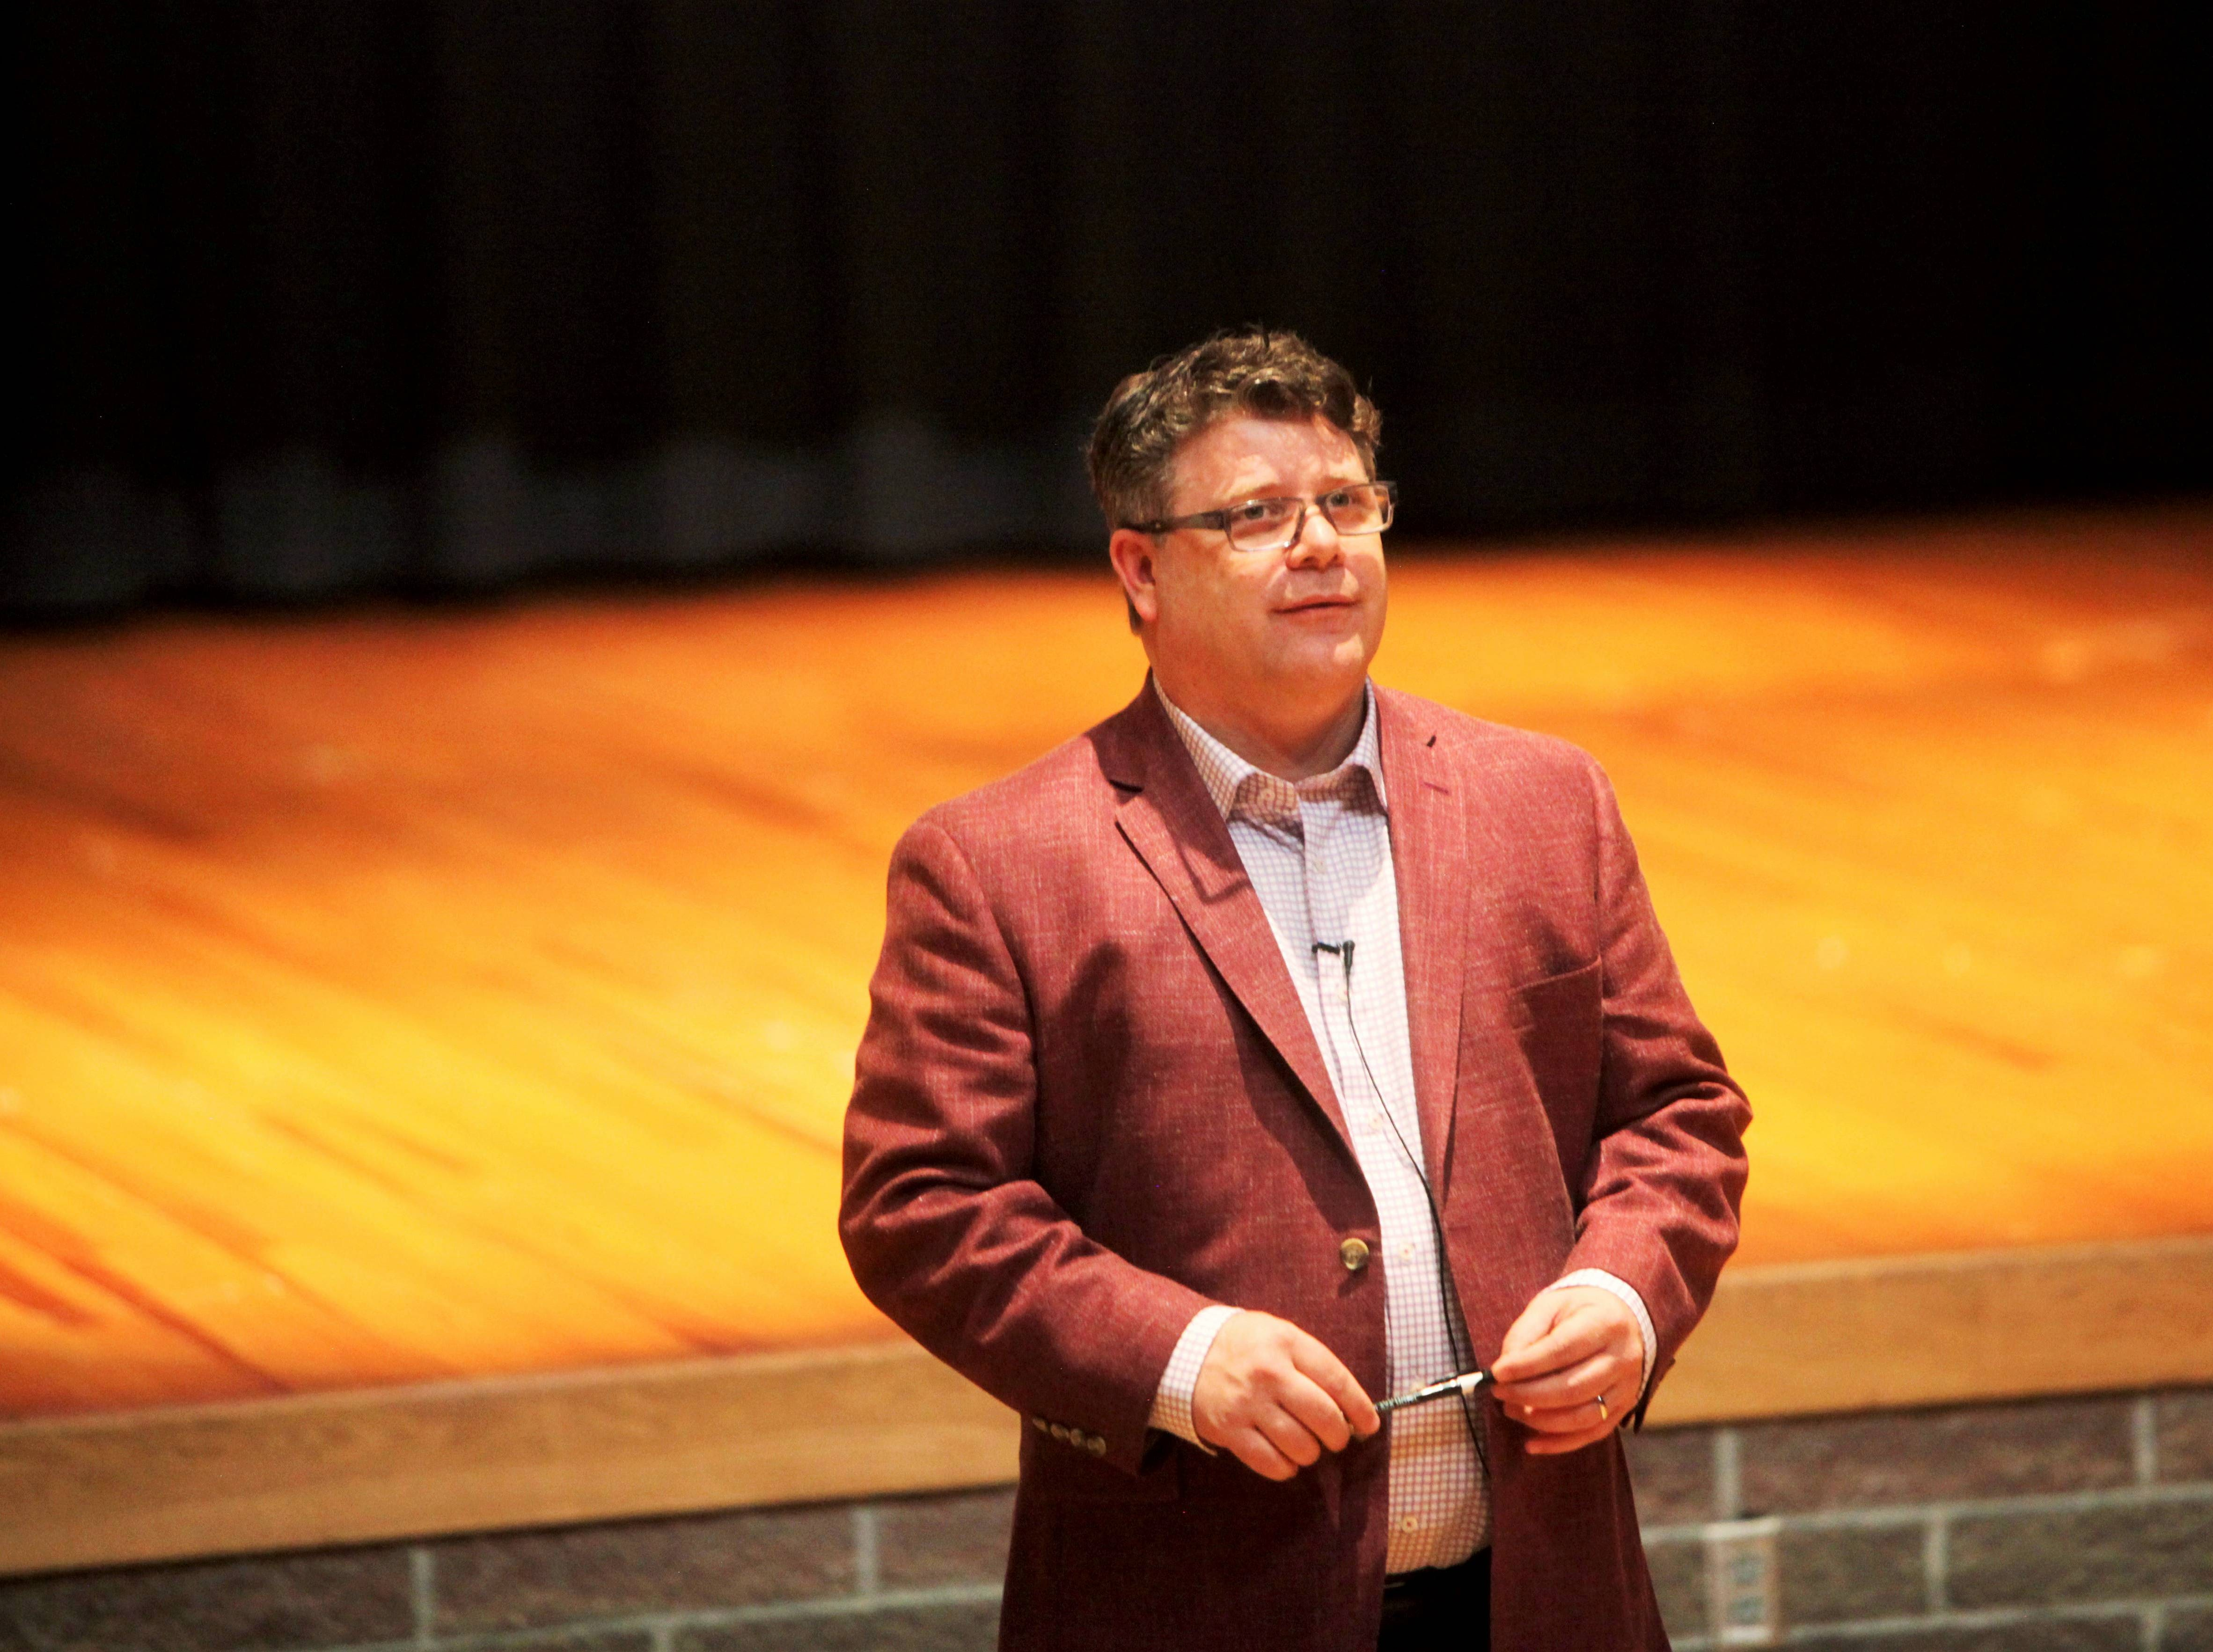 Sean Astin delivers a keynote speech during Missouri State University's Impact Summit Wednesday, May 1, 2019.